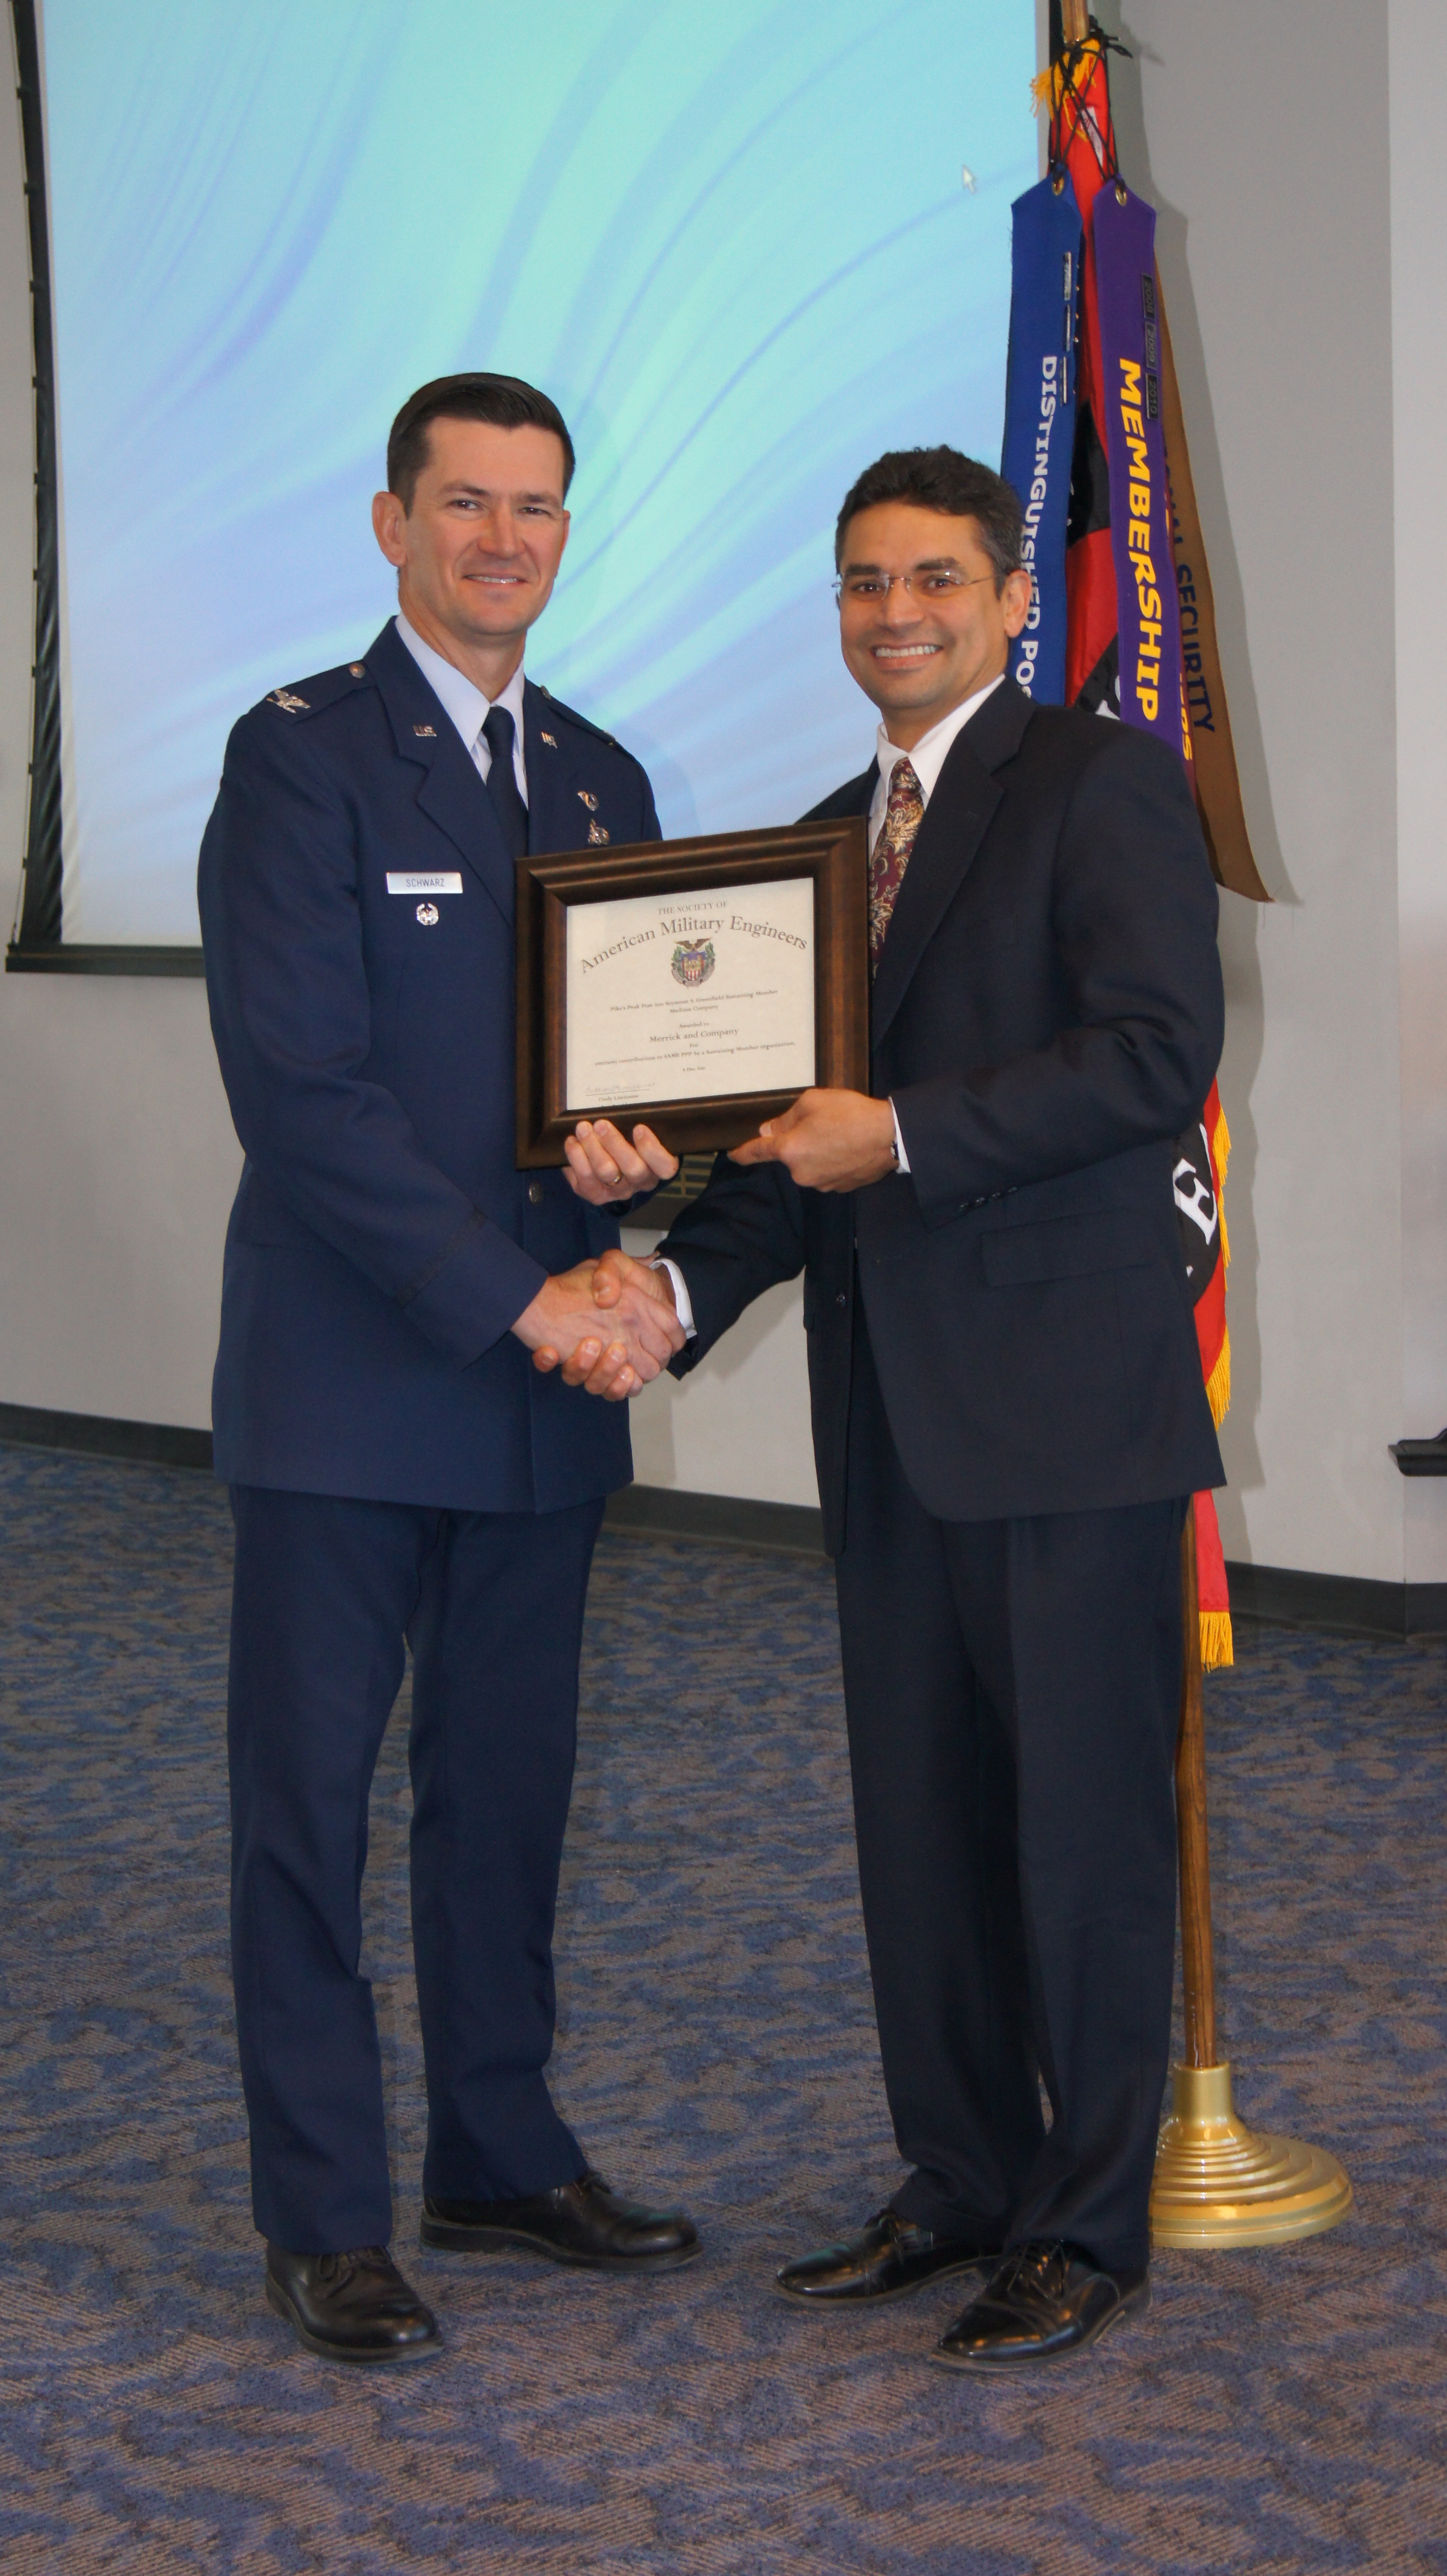 Colonel Joseph Schwarz, HQ Air Force Space Command A7C, Presenting award to Ruben Cruz with Merrick &amp; Company.